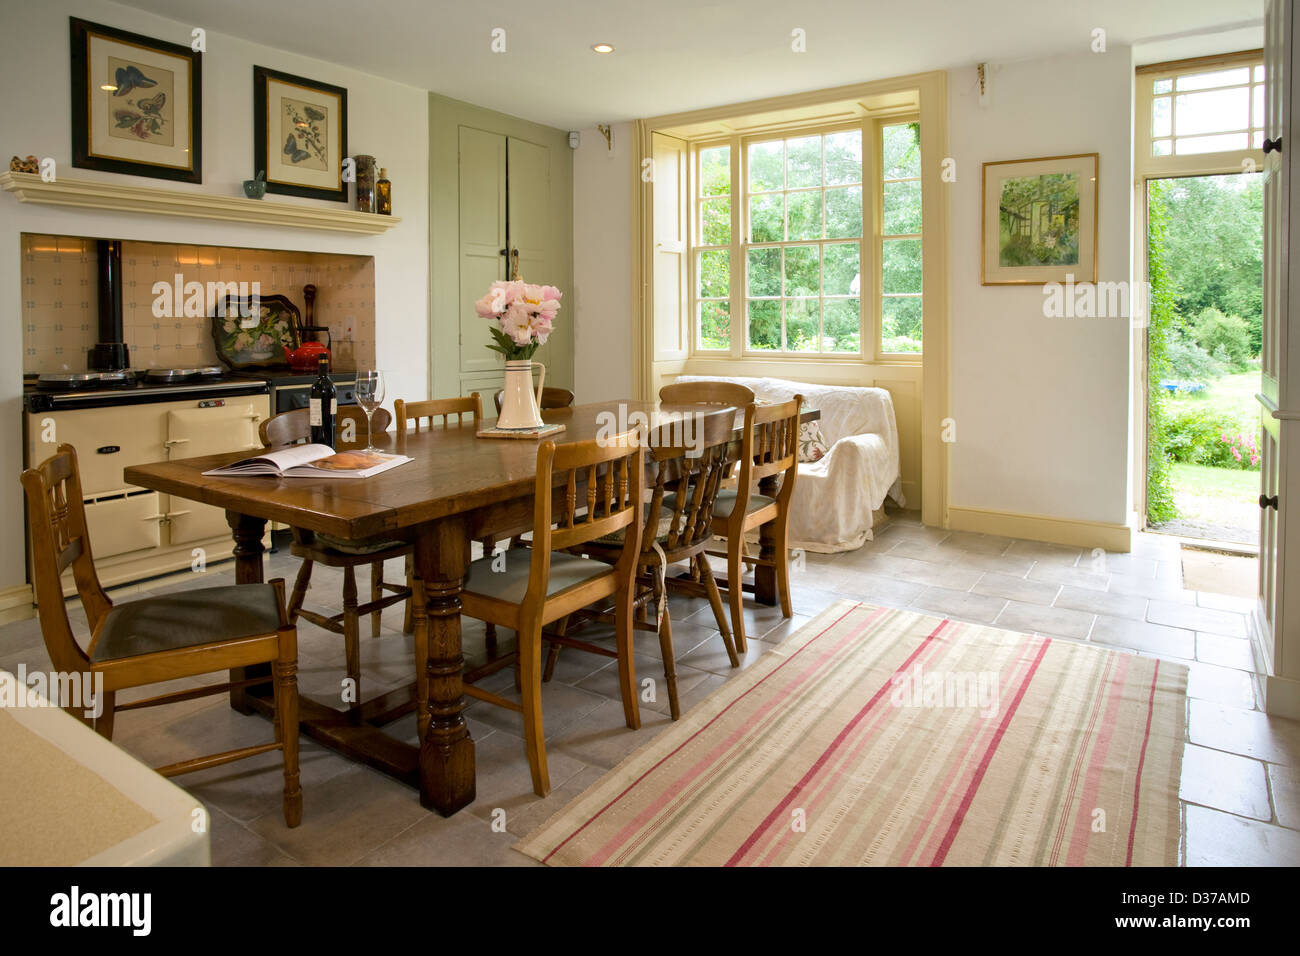 A Traditional Farmhouse Style Kitchen With Aga Cooker